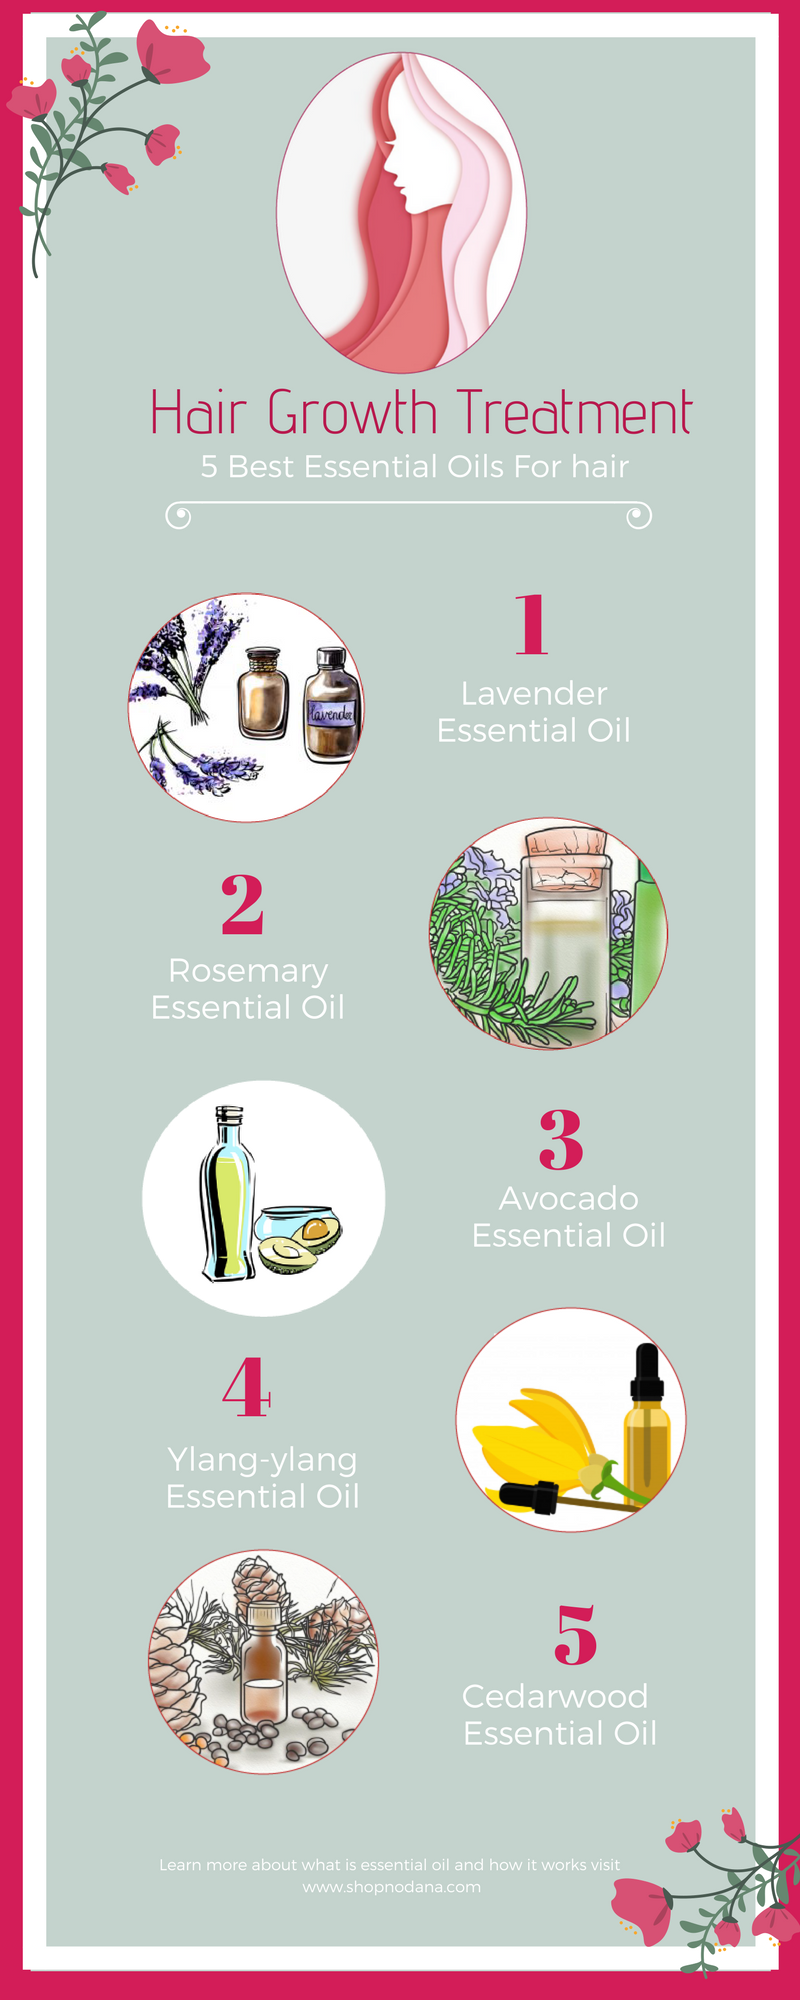 5 best essential hair oil for hair growth treatment -shopnodana